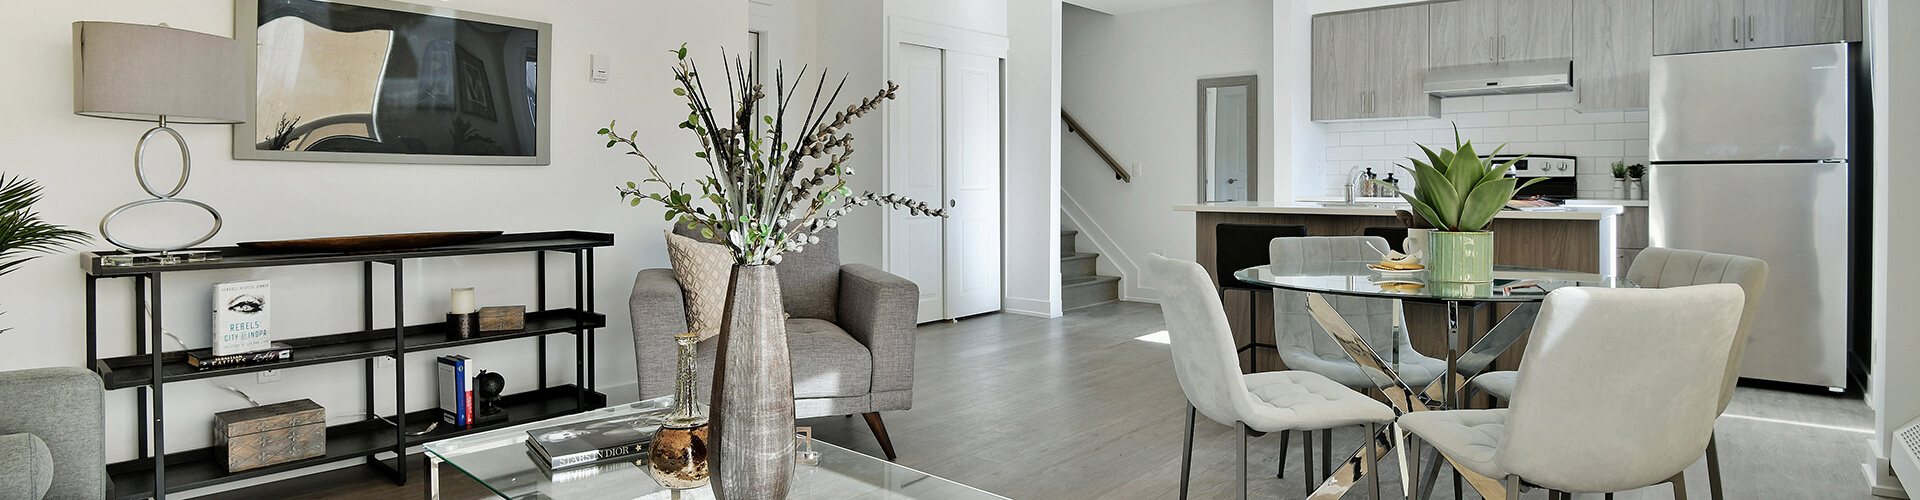 Spacious living room at Skyline Stacked Townhomes in Ottawa. Rent with Minto Apartments.